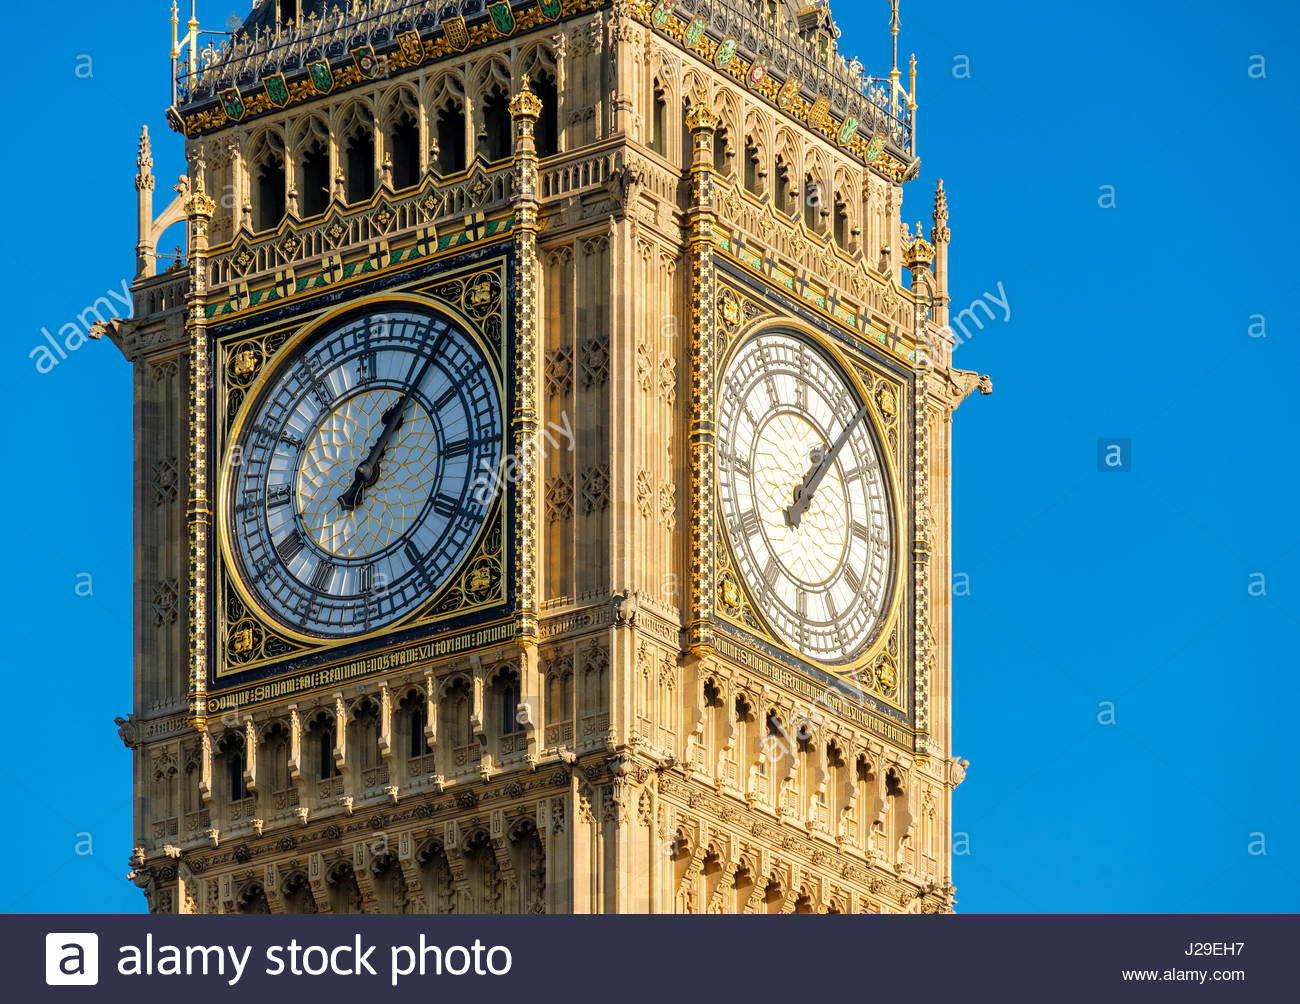 United Kingdom, England, London. Clock face of Big Ben (Elizabeth Tower), which stands at the north end of the Palace - Stock Image